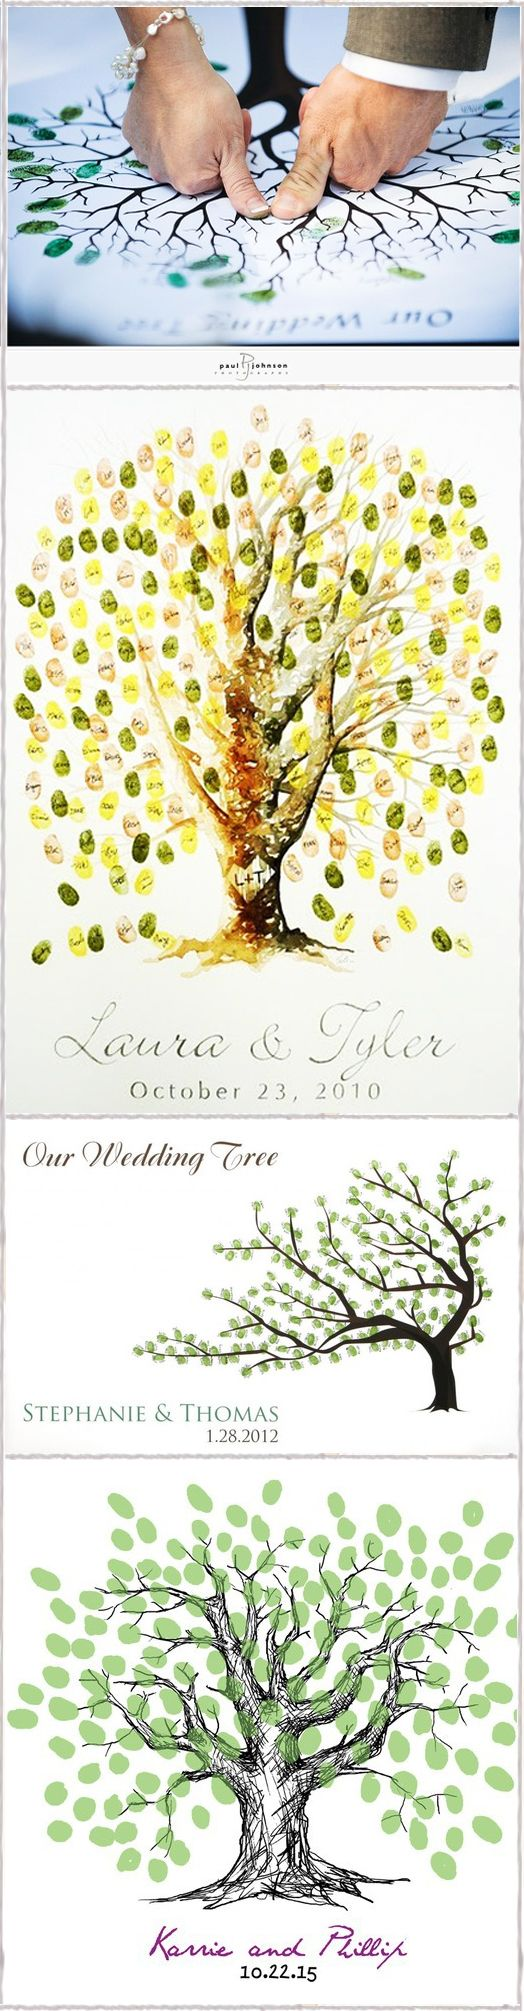 wedding tree, awesome